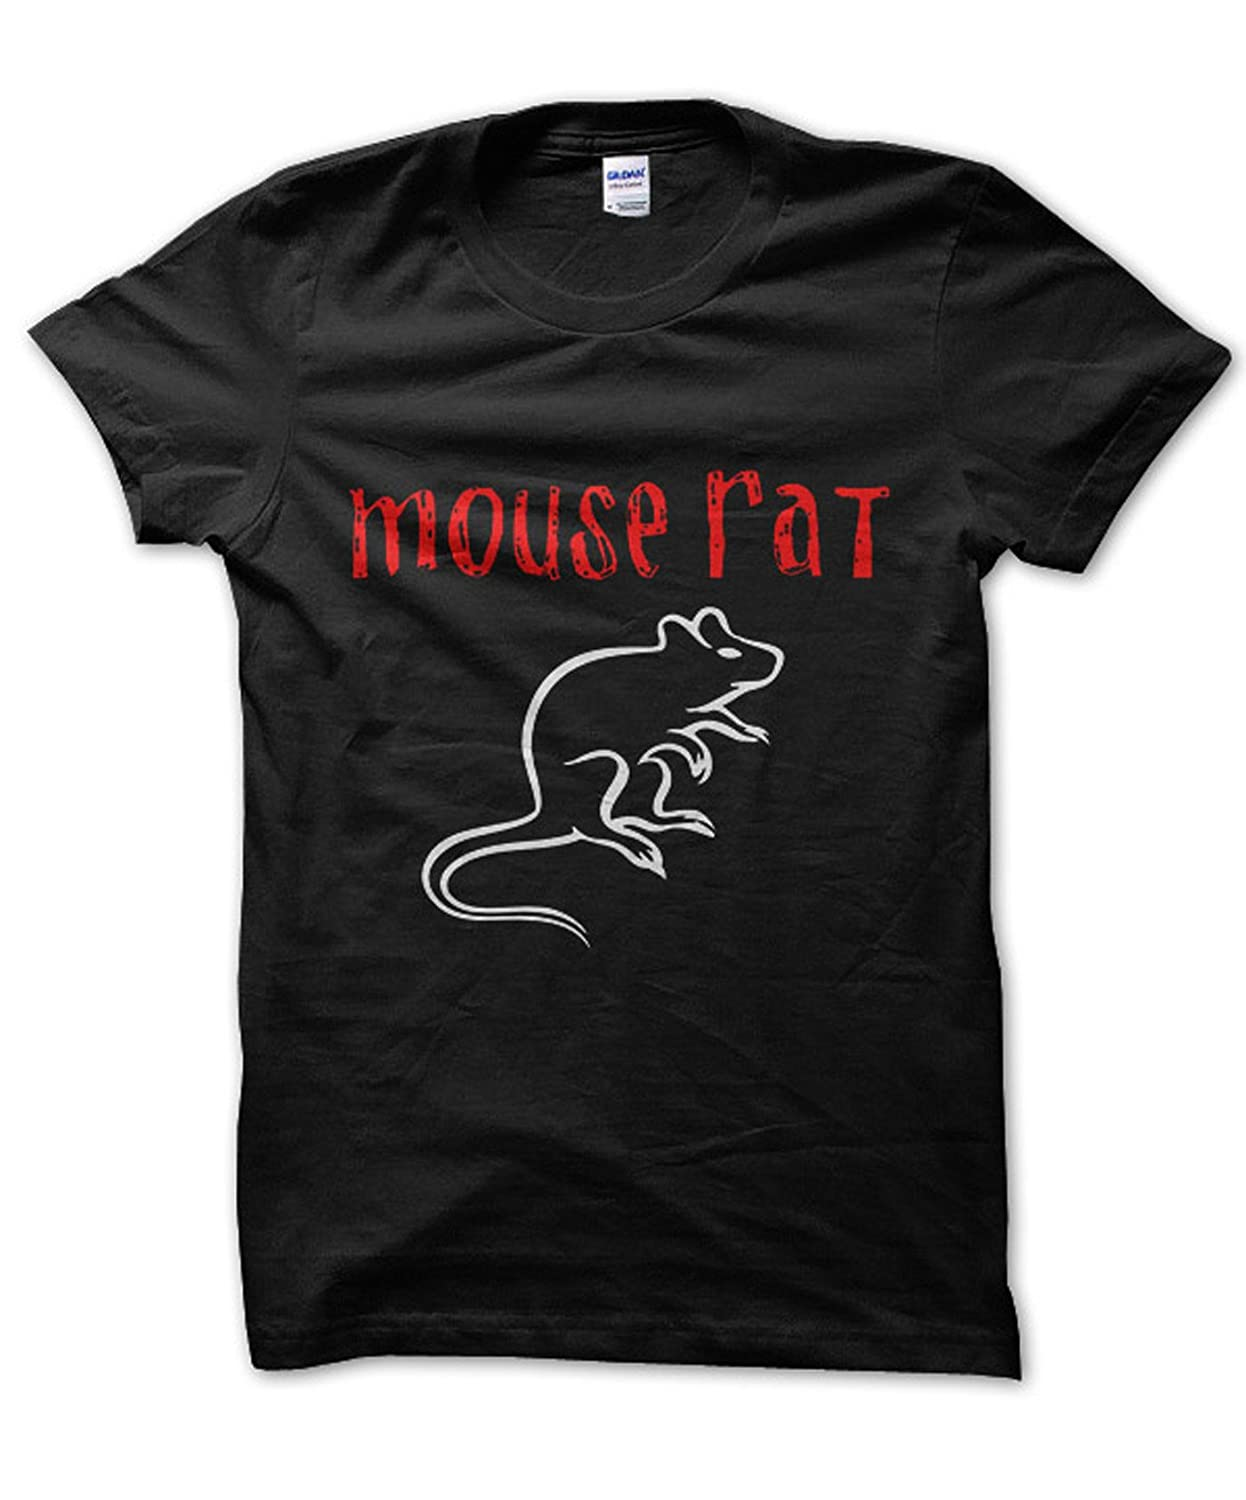 Mouse Rat Shirt Andy Mouse Rat Andy Dwyer Black